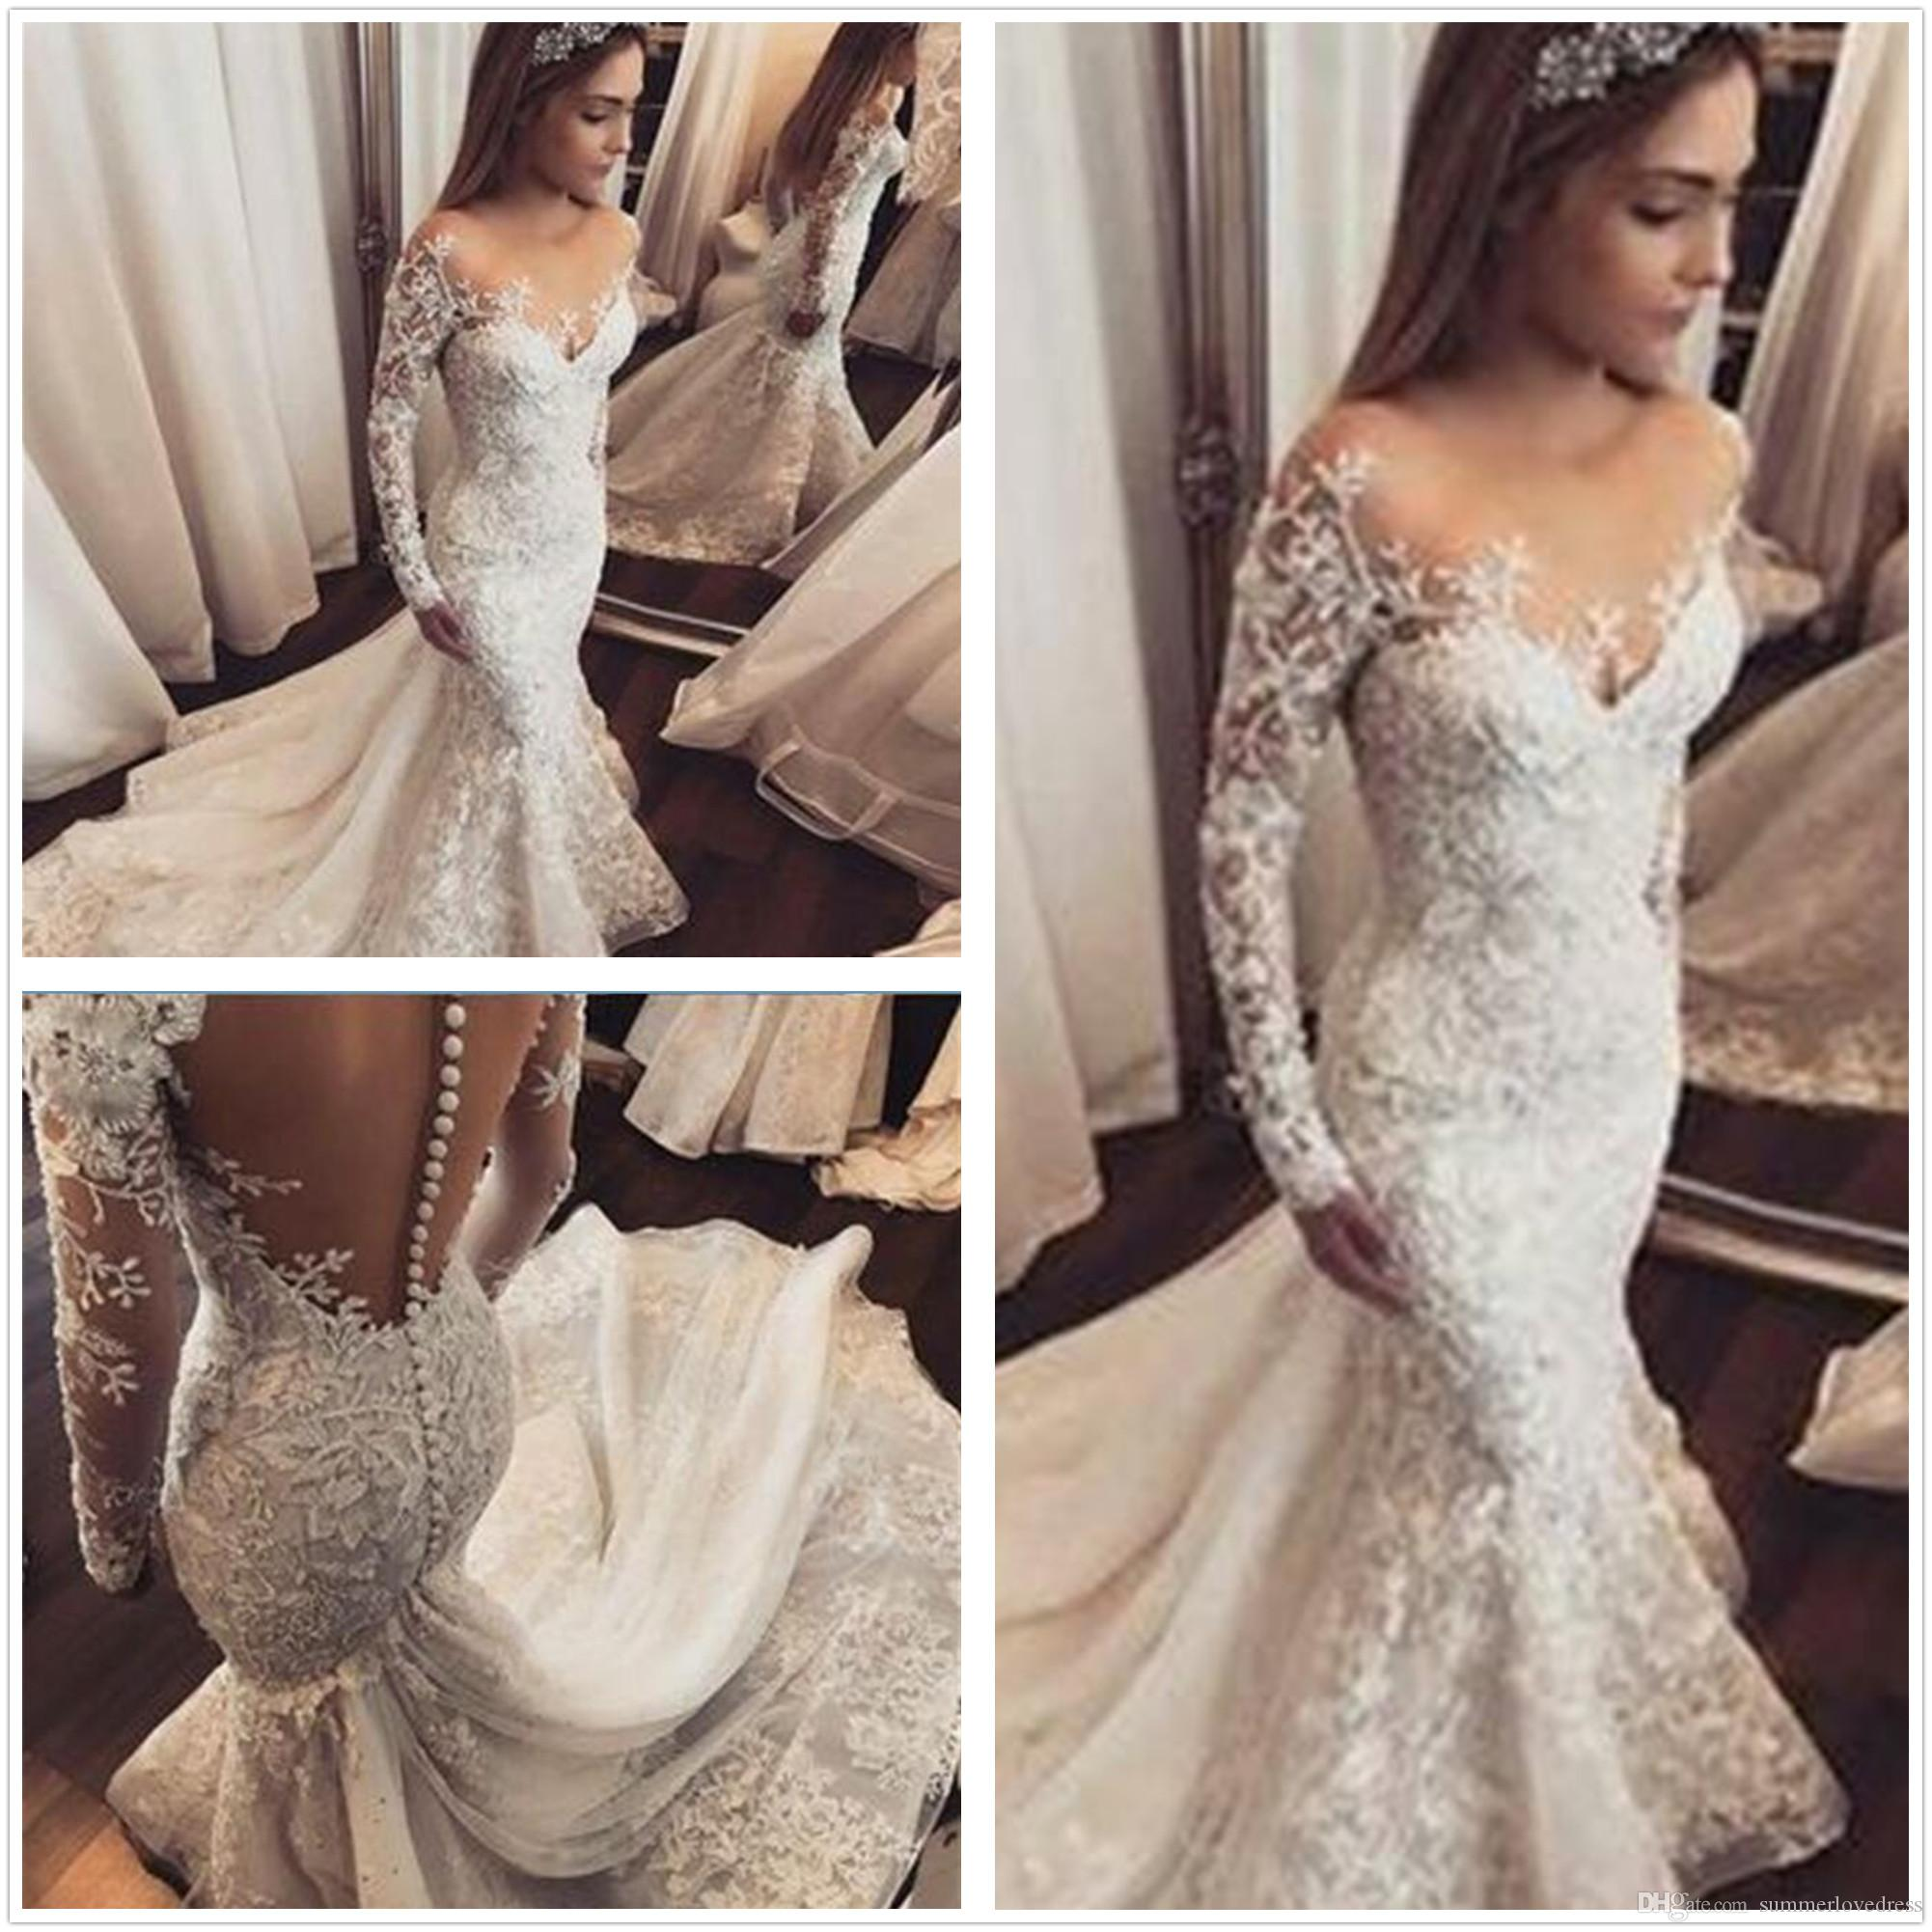 da739b5622f 2018 Sheer Long Sleeves Lace Mermaid Wedding Dresses Tulle Lace Appliques  Bridal Wedding Gowns Vestido De Novia With Buttons Perfect Wedding Dress  Pink ...